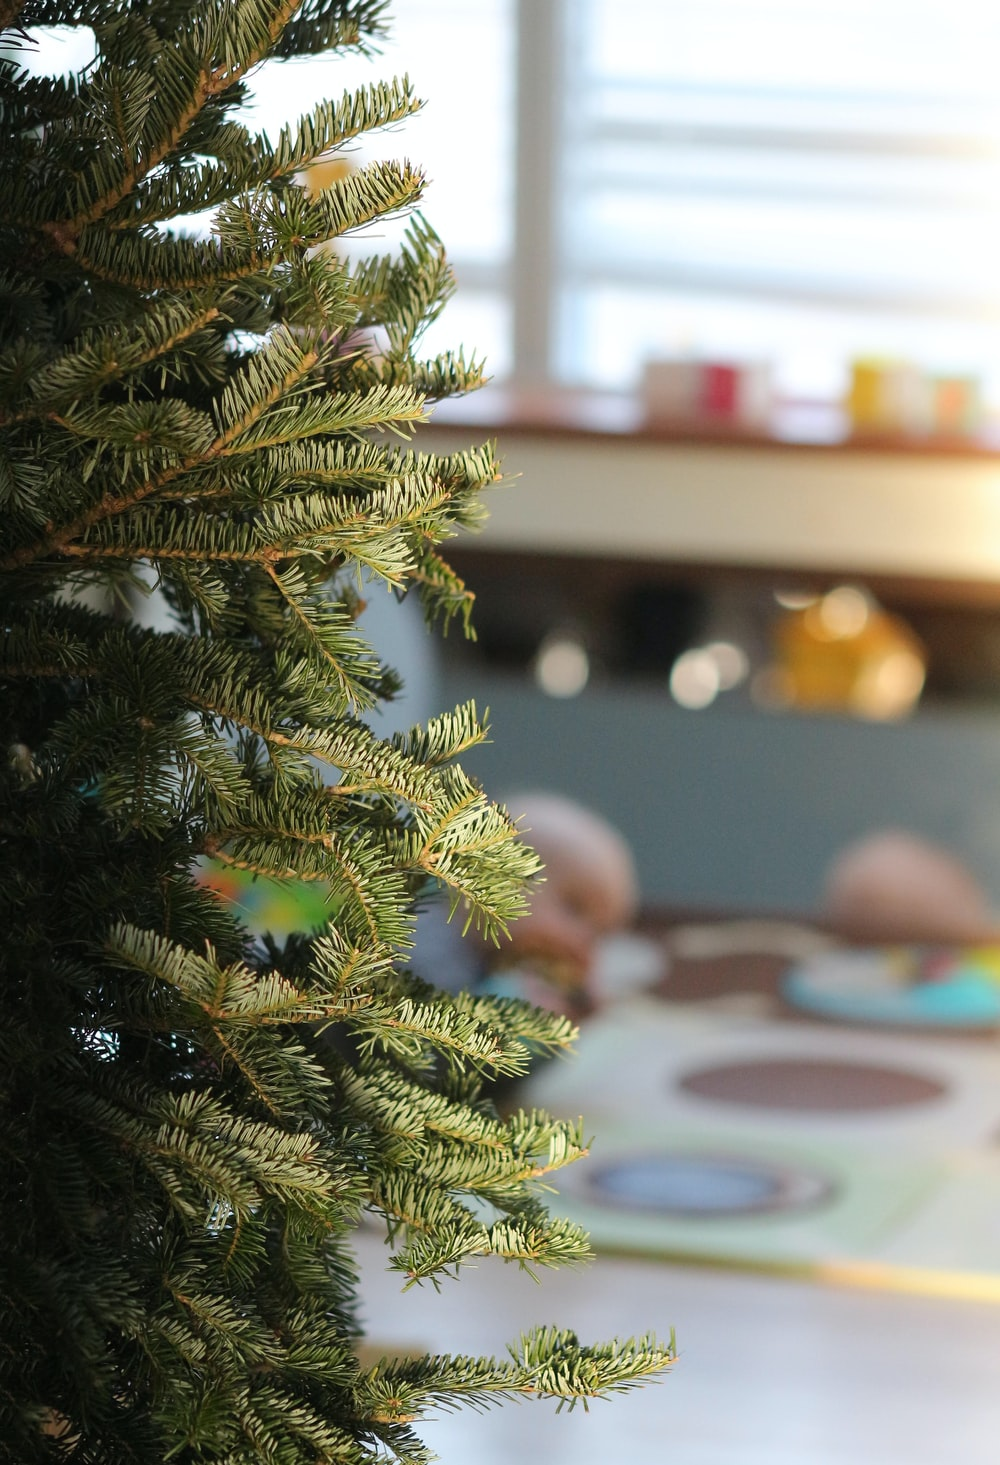 close-up photography of Christmas tree